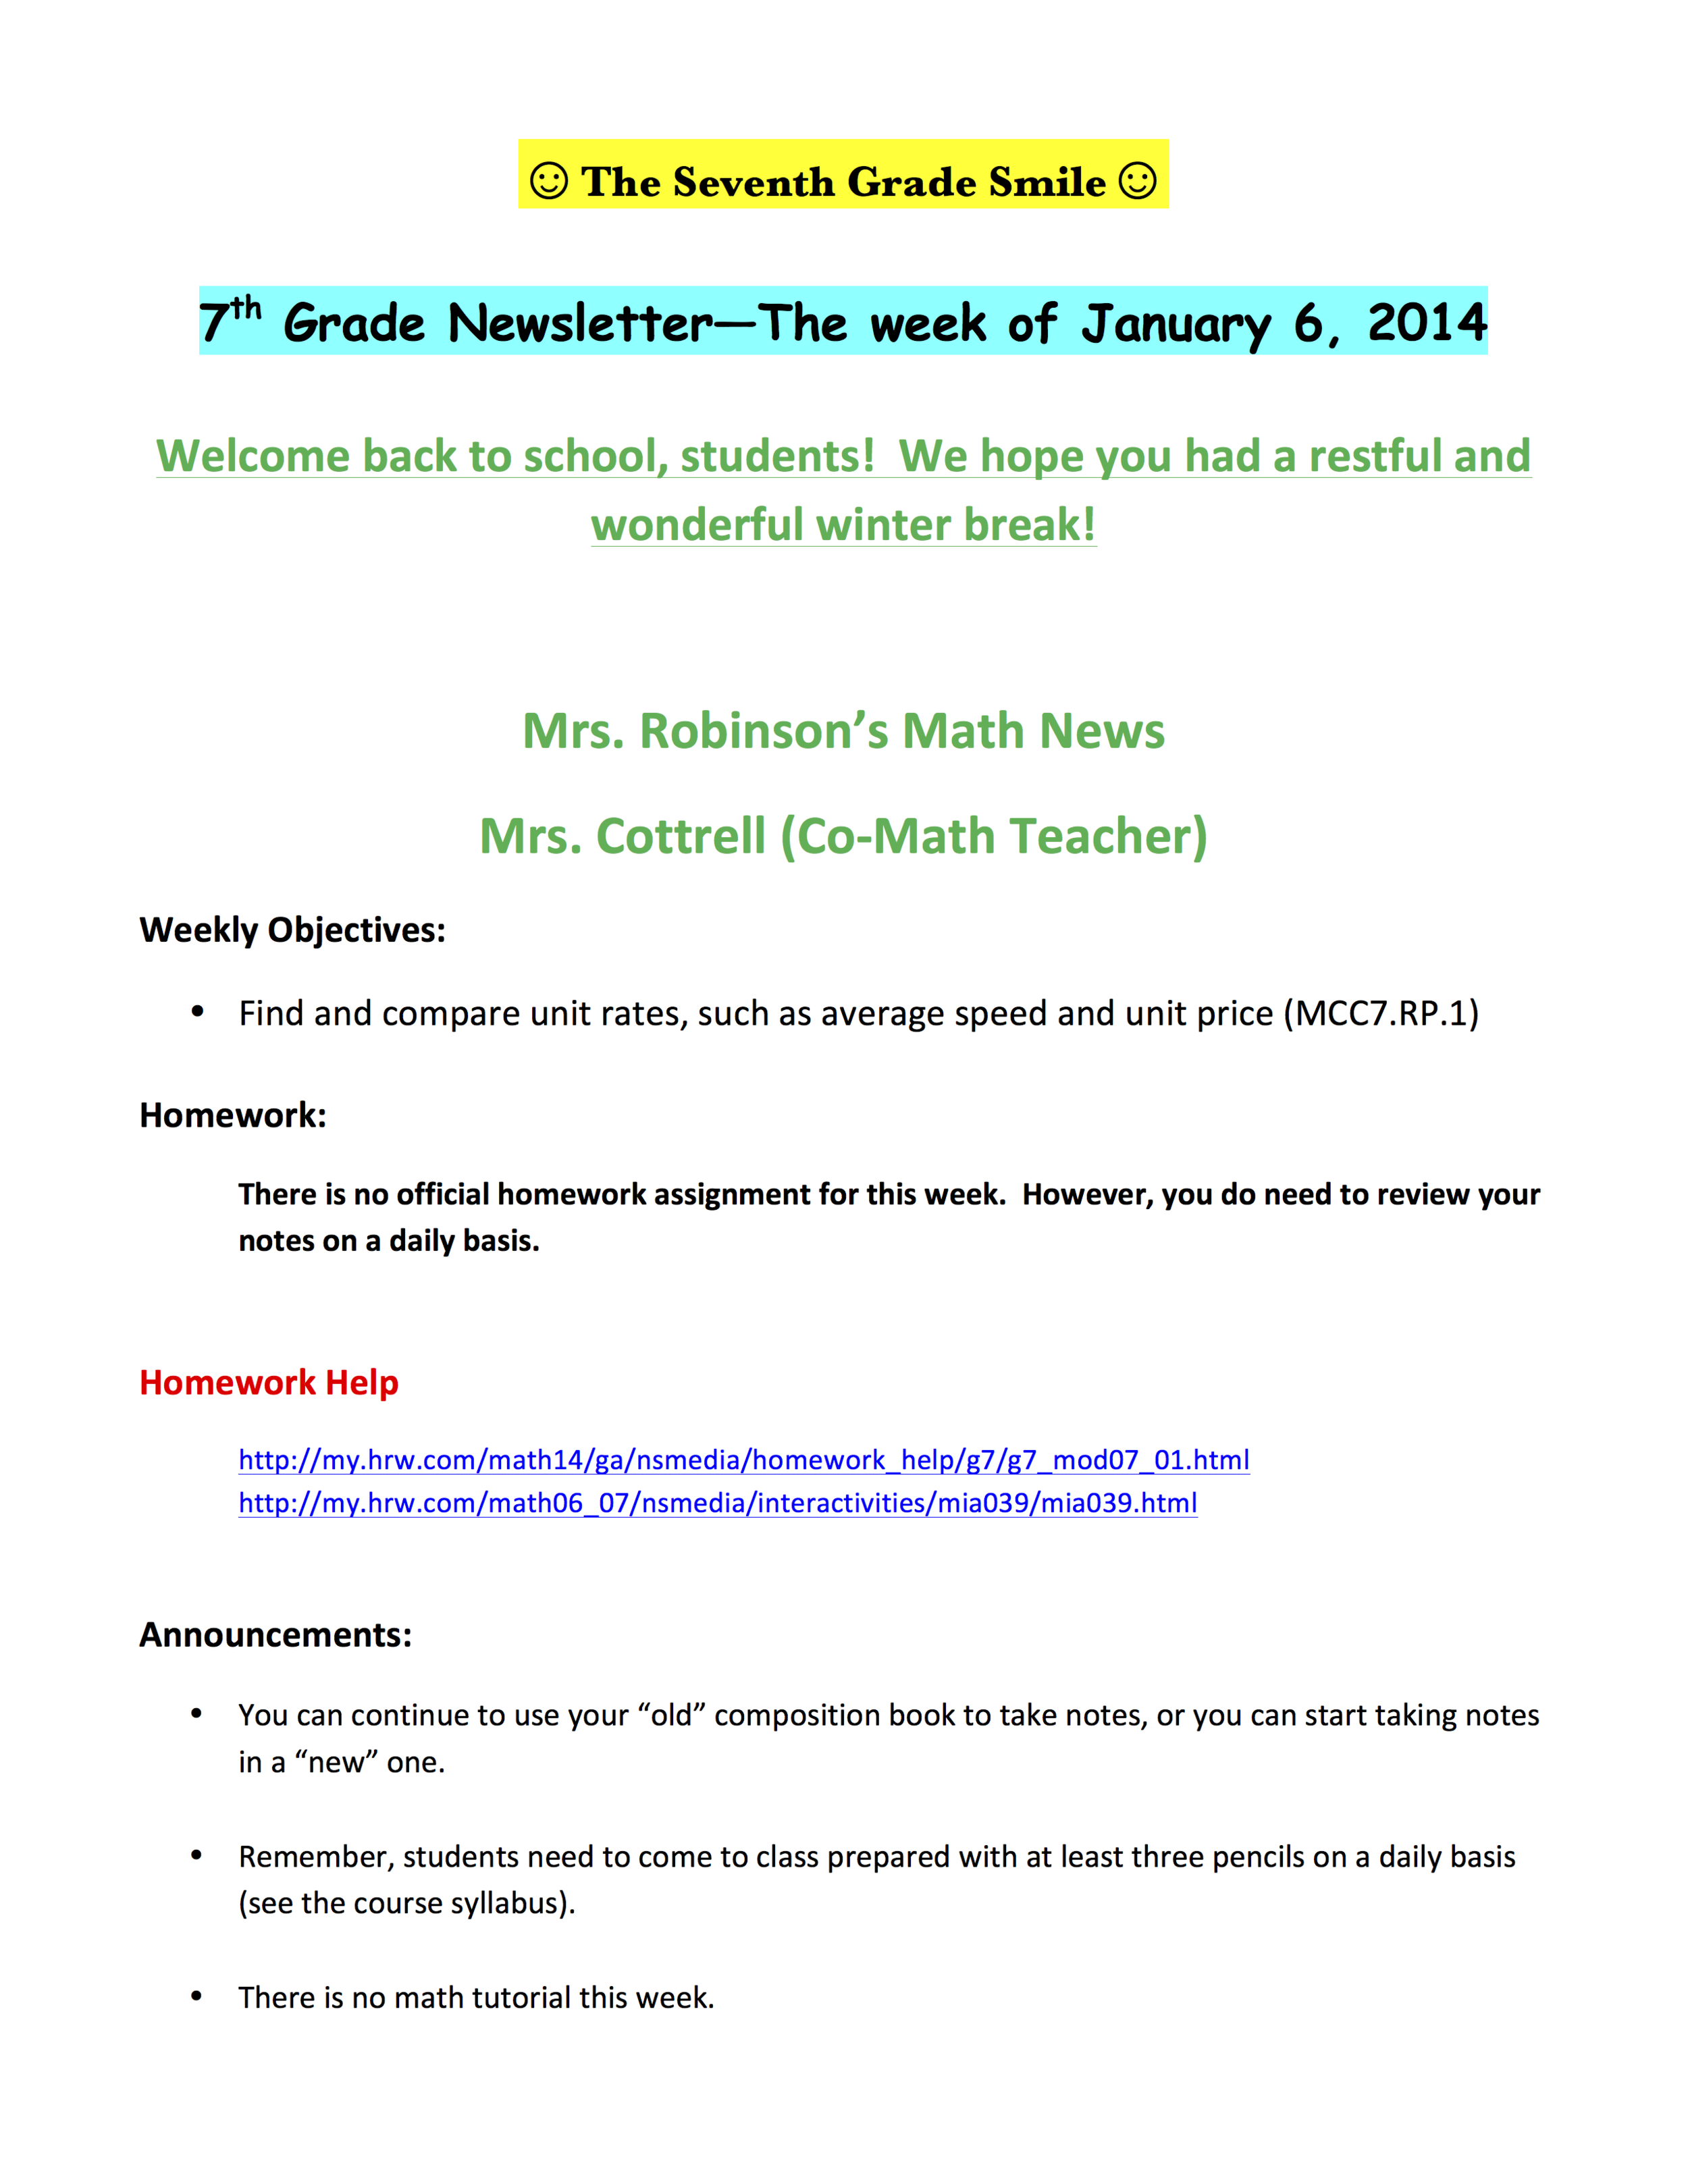 7th grade newsletter 1-9A.png